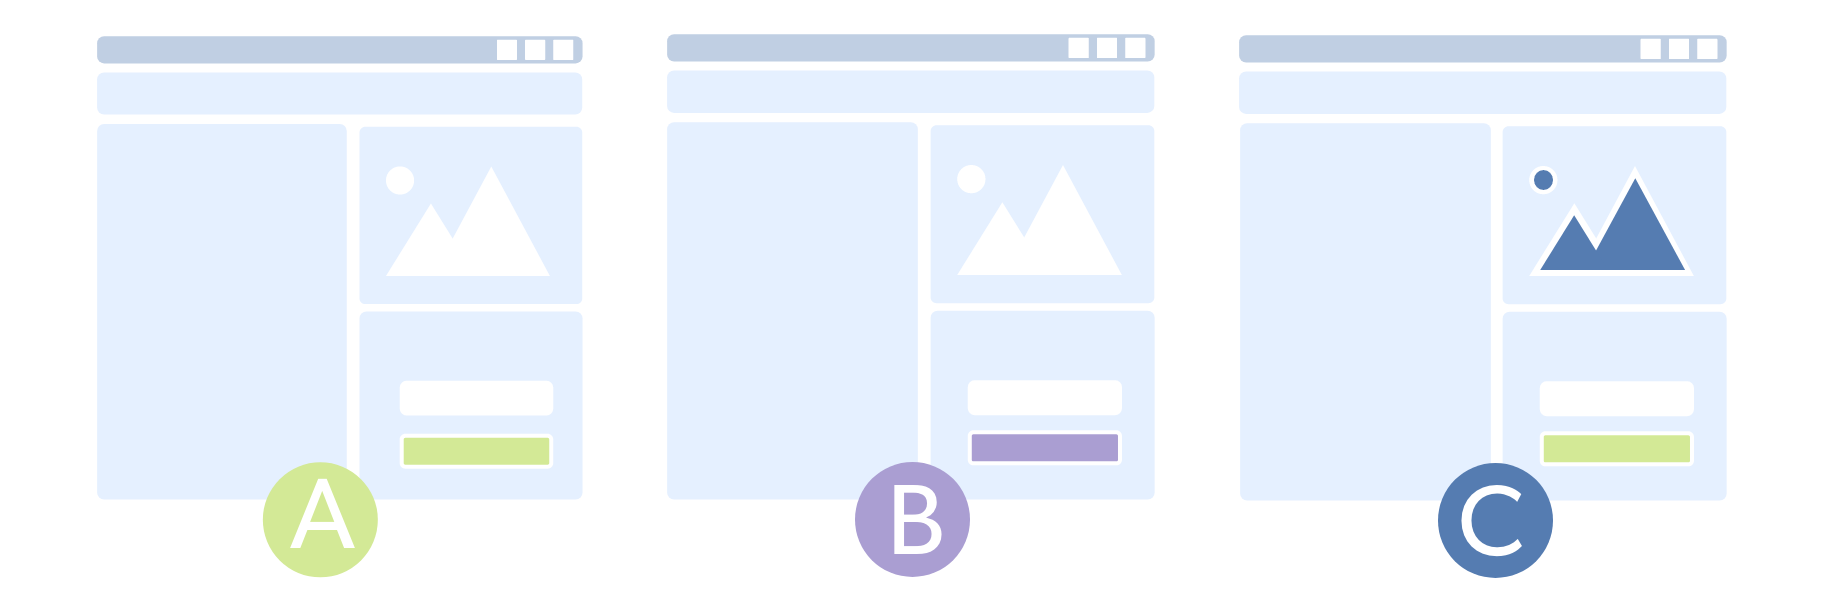 a/b/n testing illustration